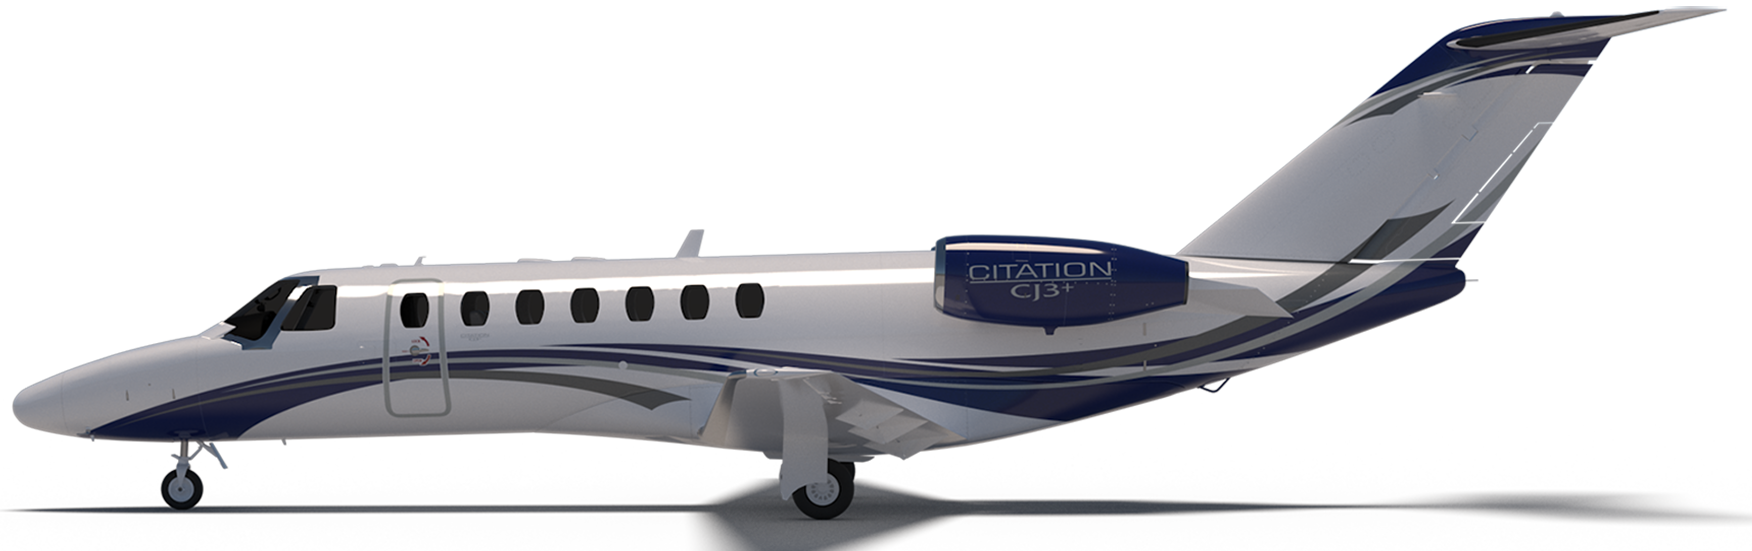 remote control cessna with Cj3 on Rc Aircraft as well Amtrak Acs 64 Plush Toy likewise Airplanes For Sale besides Electric Rc Planes furthermore 756822709.